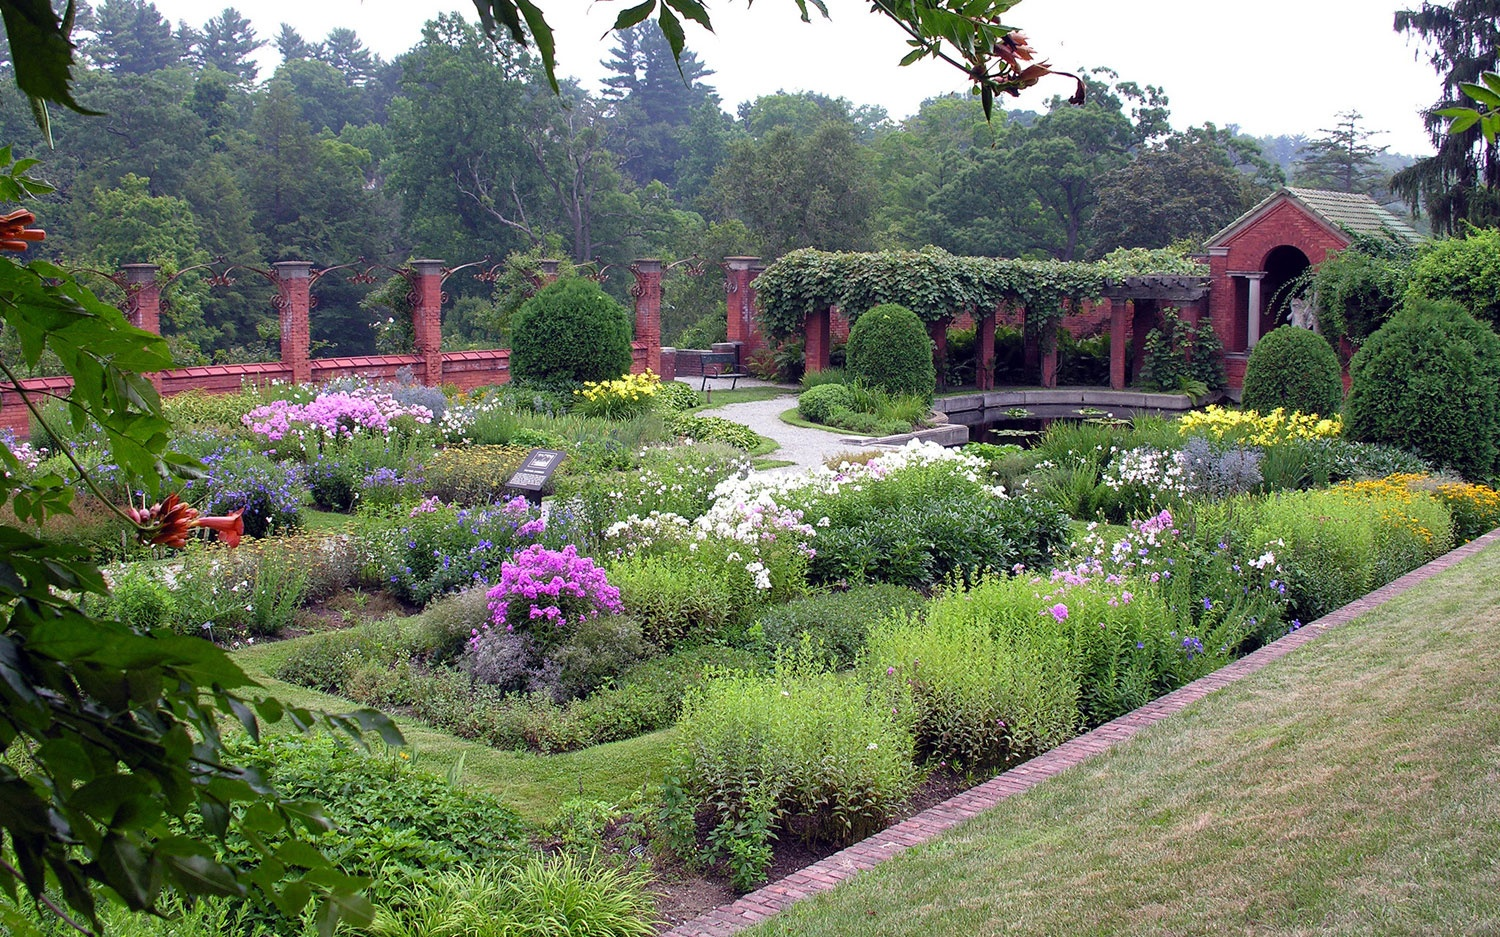 garden at Vanderbilt Mansion on U.S. Route 9, NY